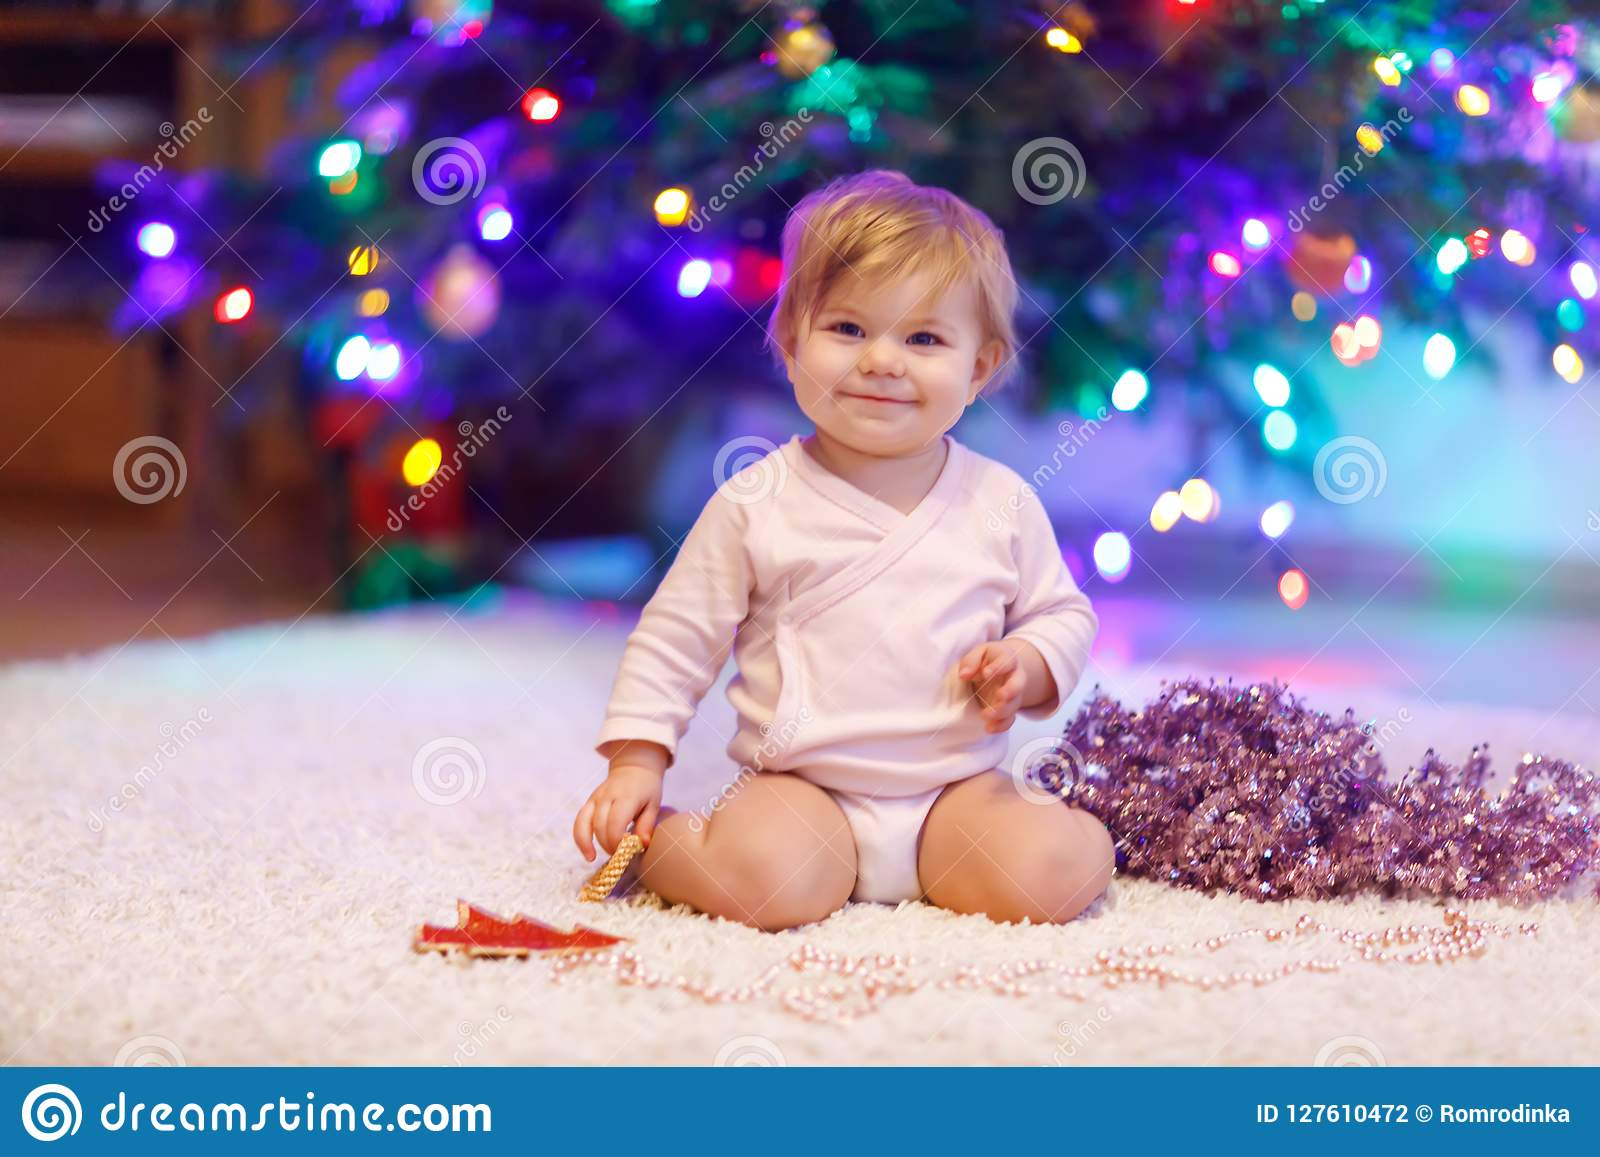 c866636b36b Adorable baby girl holding pink Christmas tree beads in cute hands. Little  child playing and decorating xmas tree with family. First celebration.